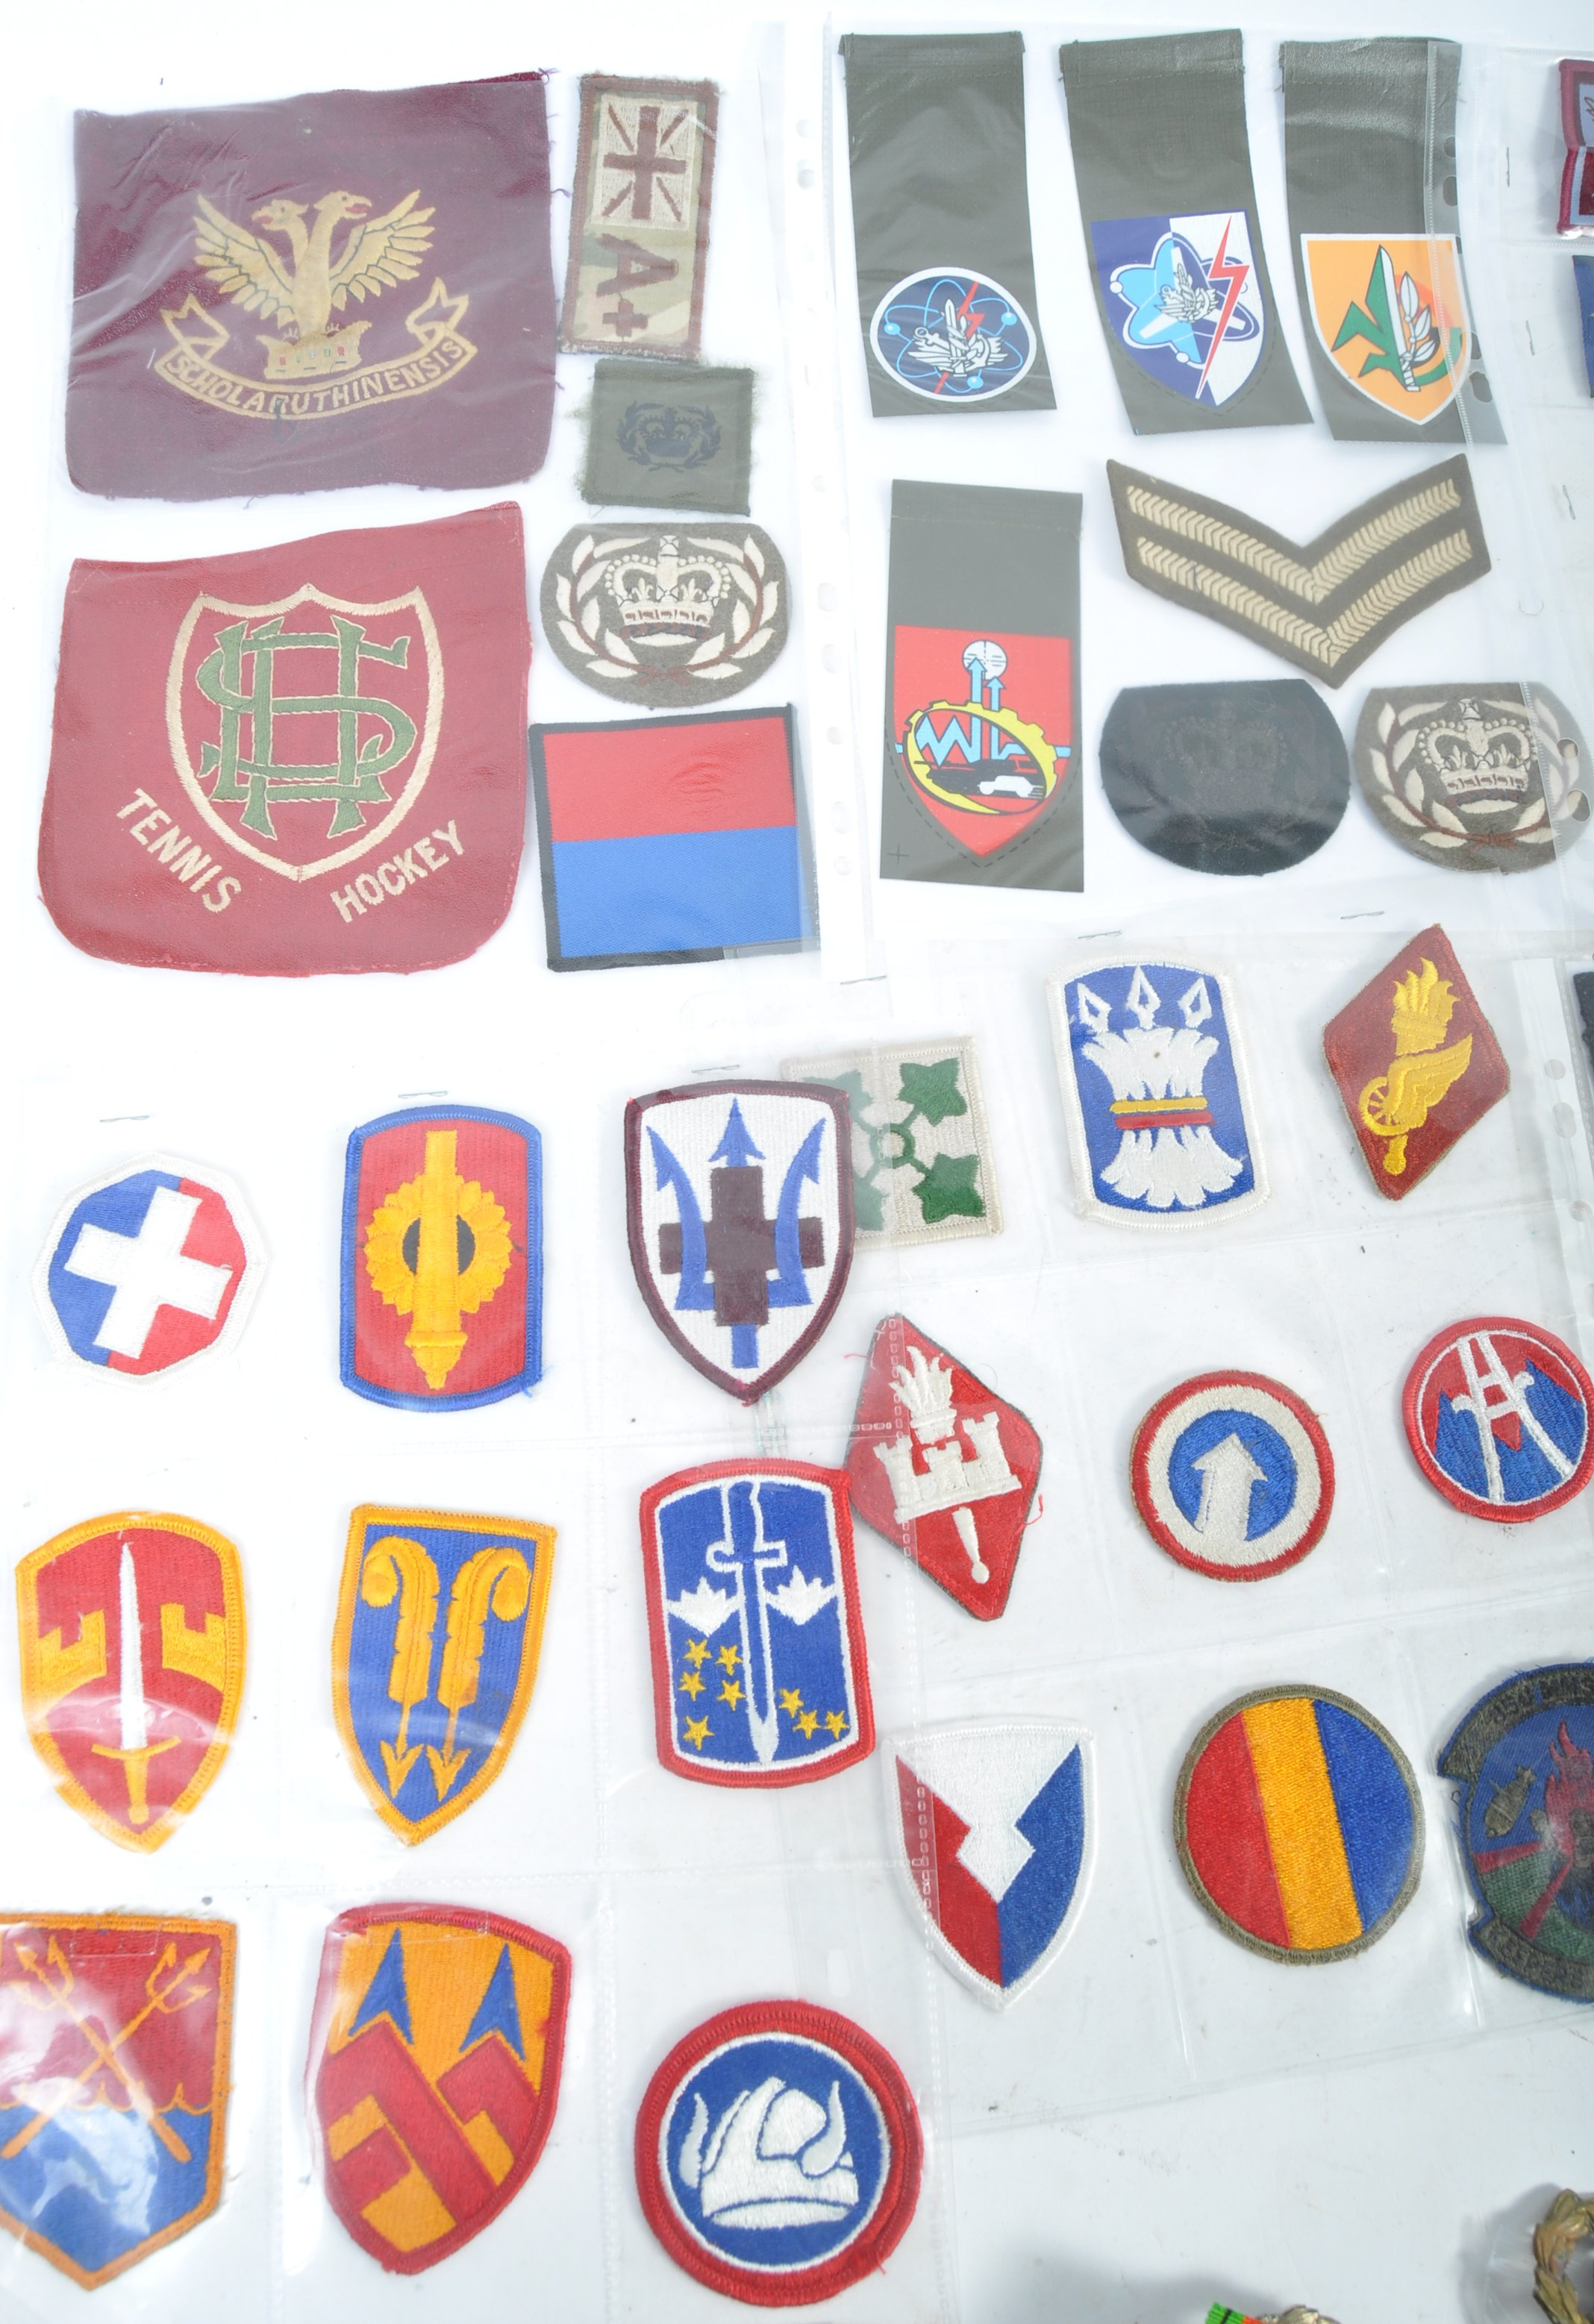 LARGE COLLECTION OF VINTAGE BRITISH ARMY DIVISIONA - Image 4 of 5